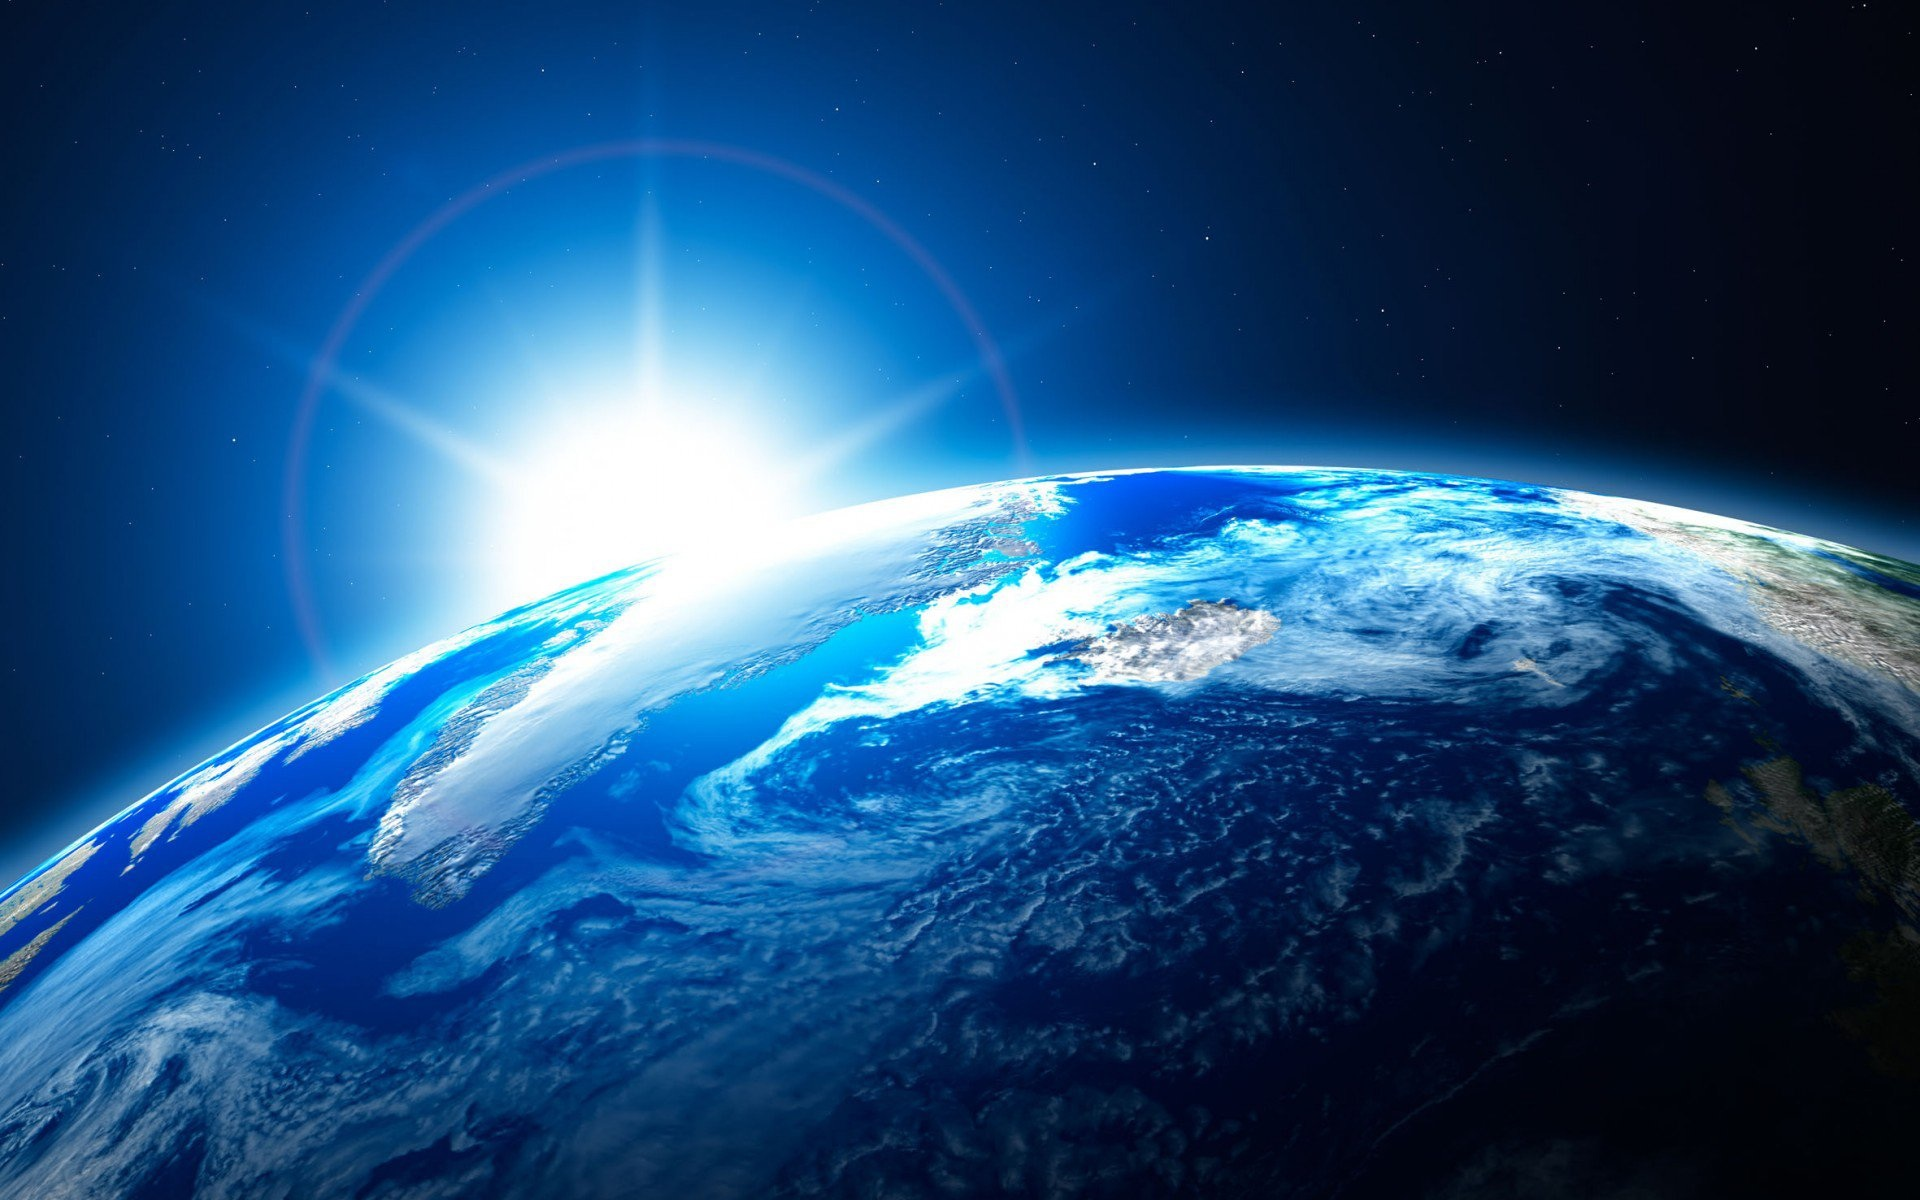 Earth Planet Images Beautiful HD Wallpaper And Background Photos